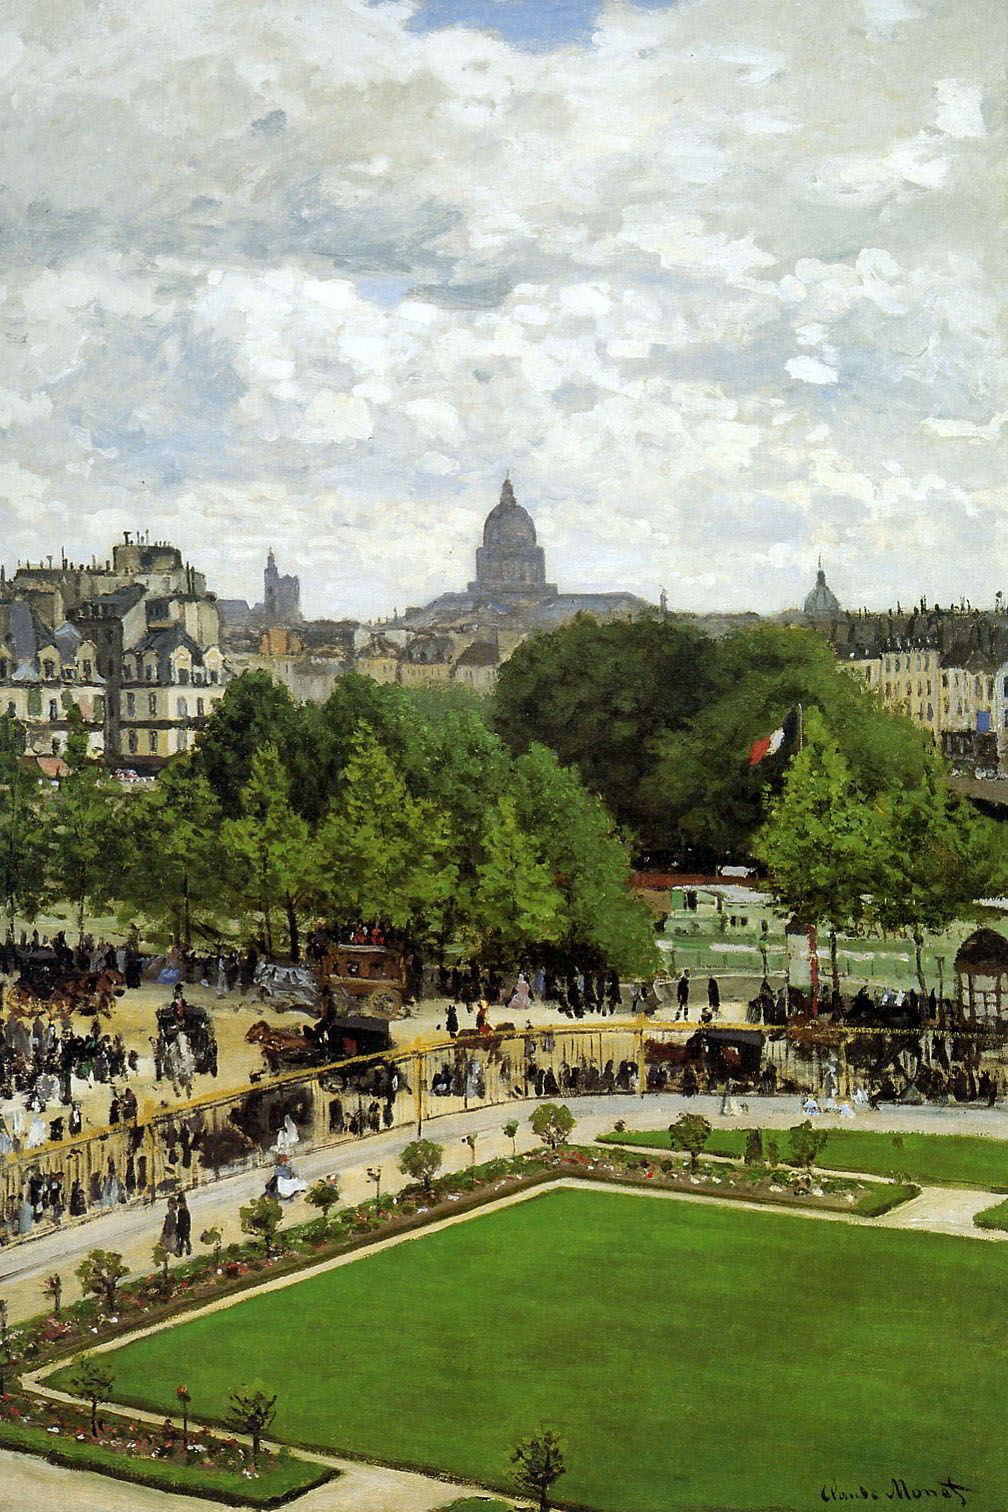 The Garden of the Princess by Claude Monet